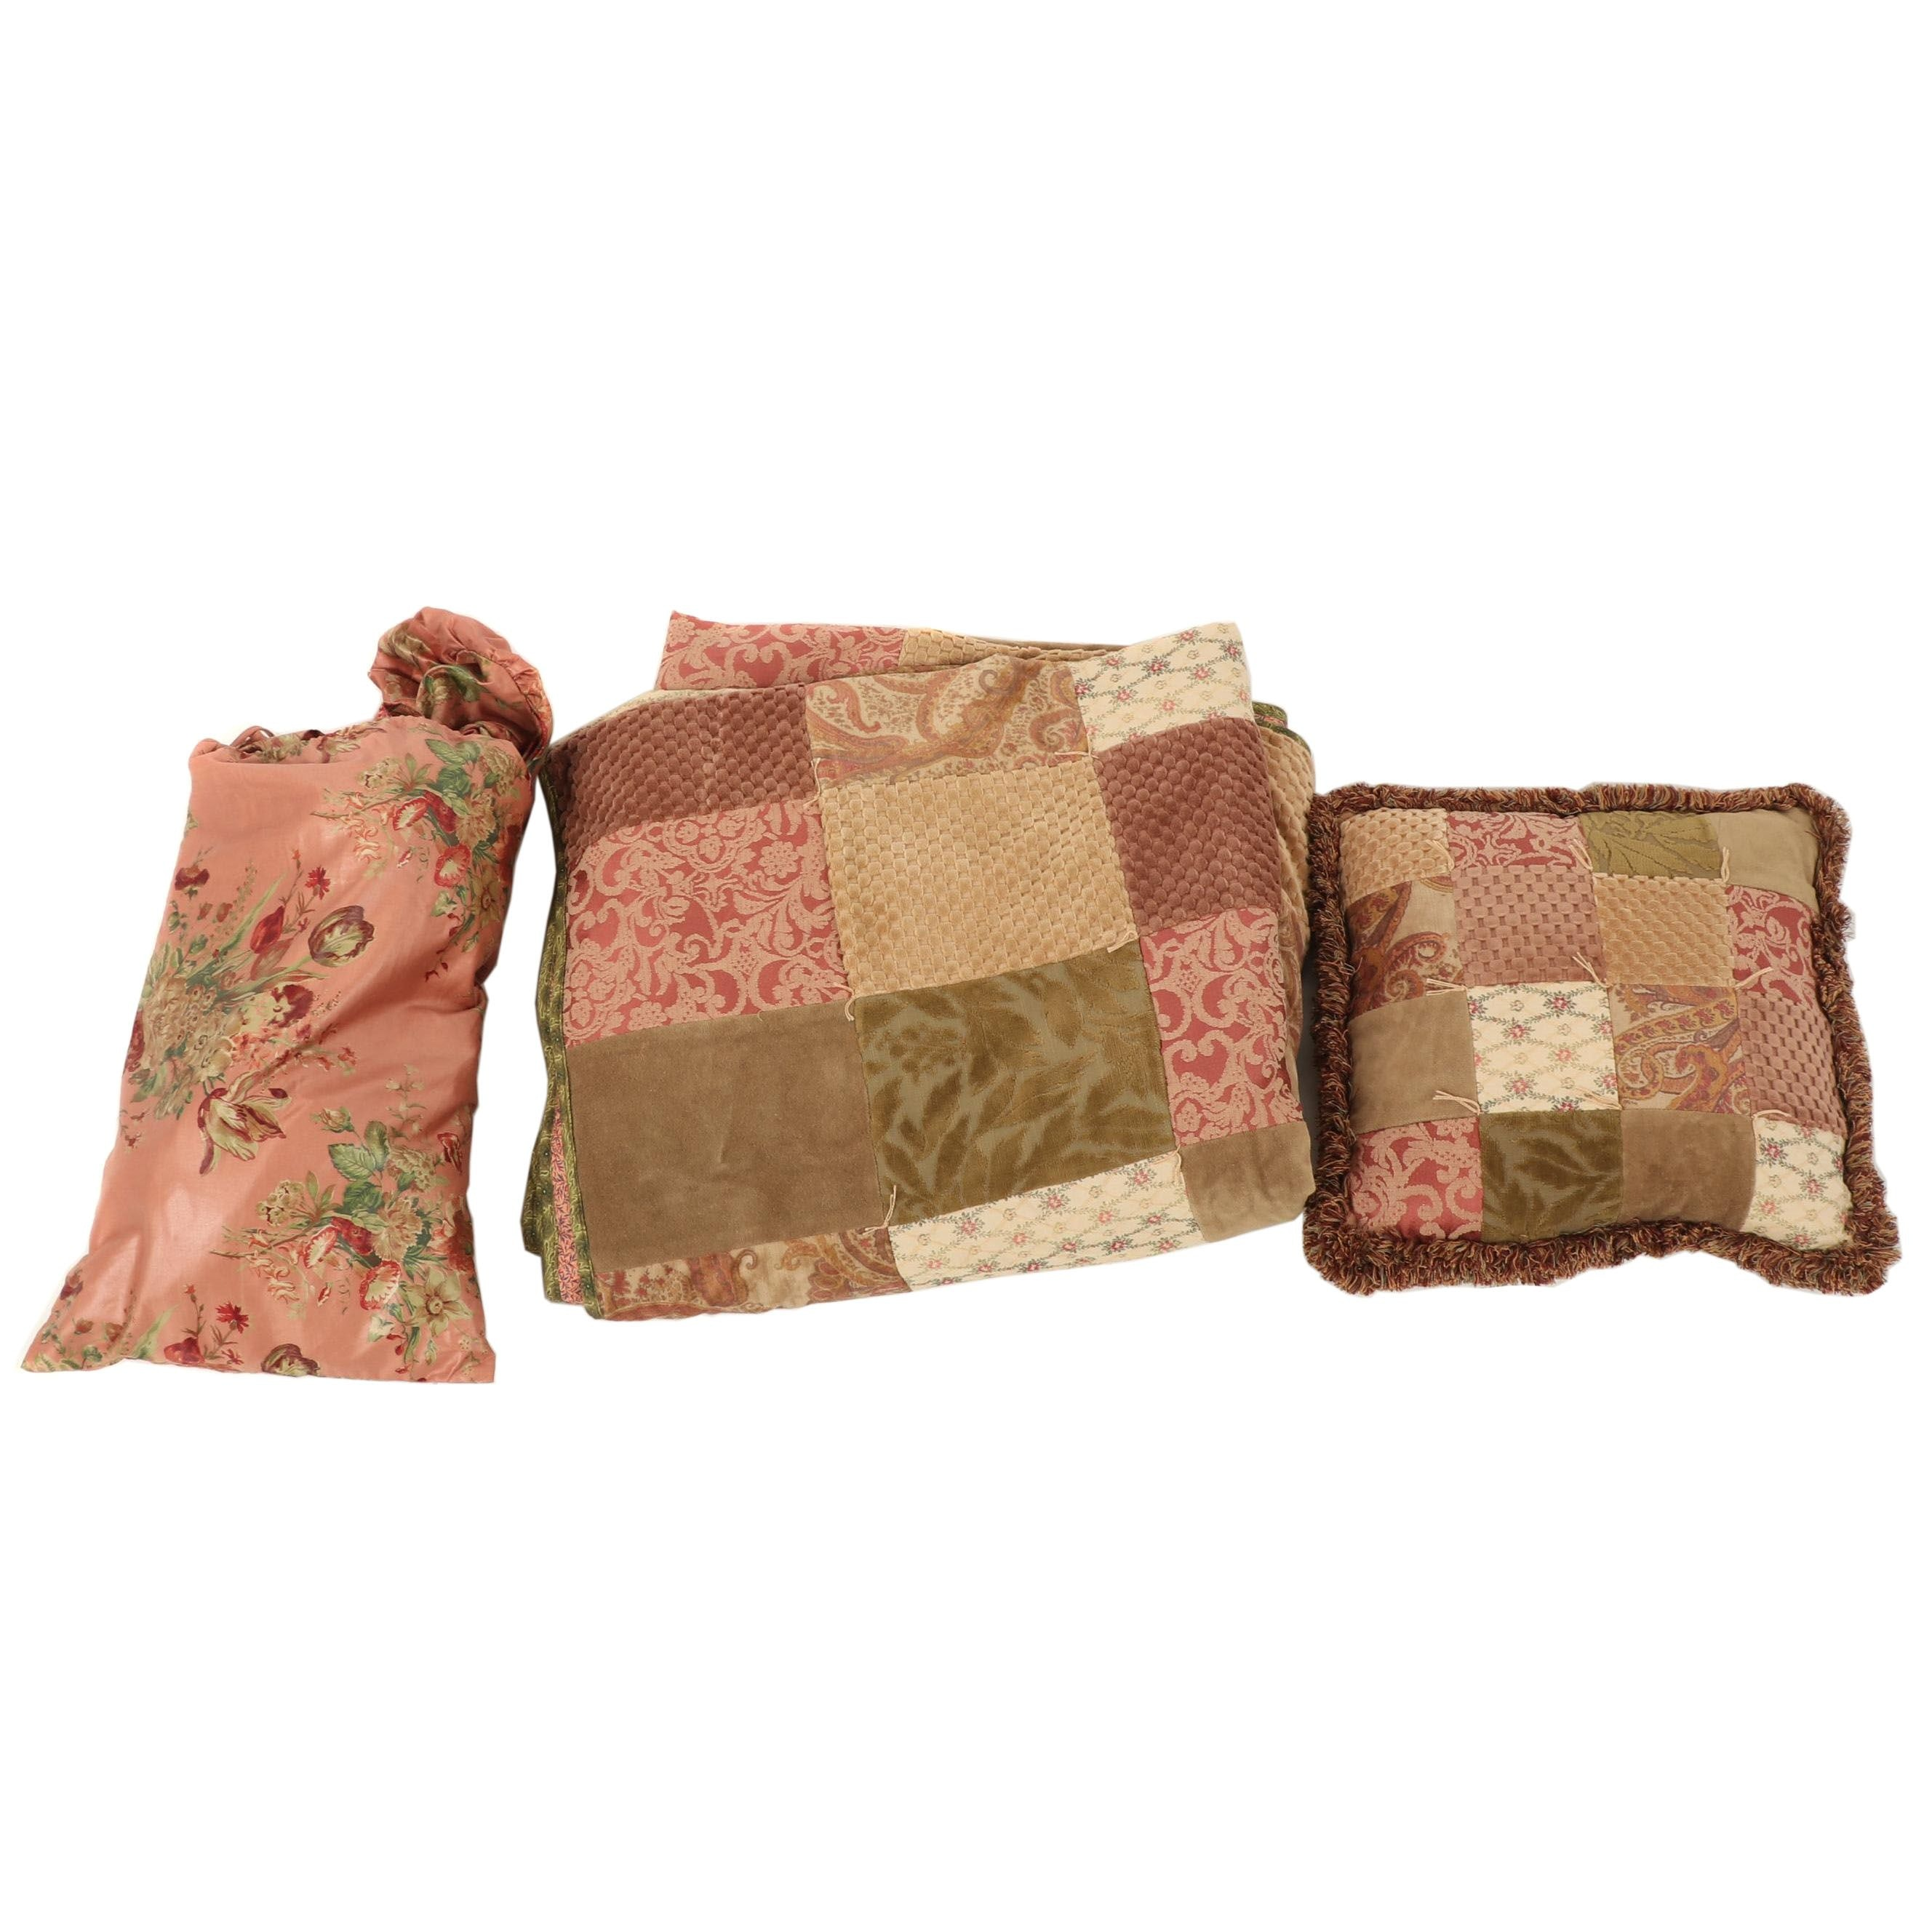 Double D Ranch Patchwork and Chintz Bedding